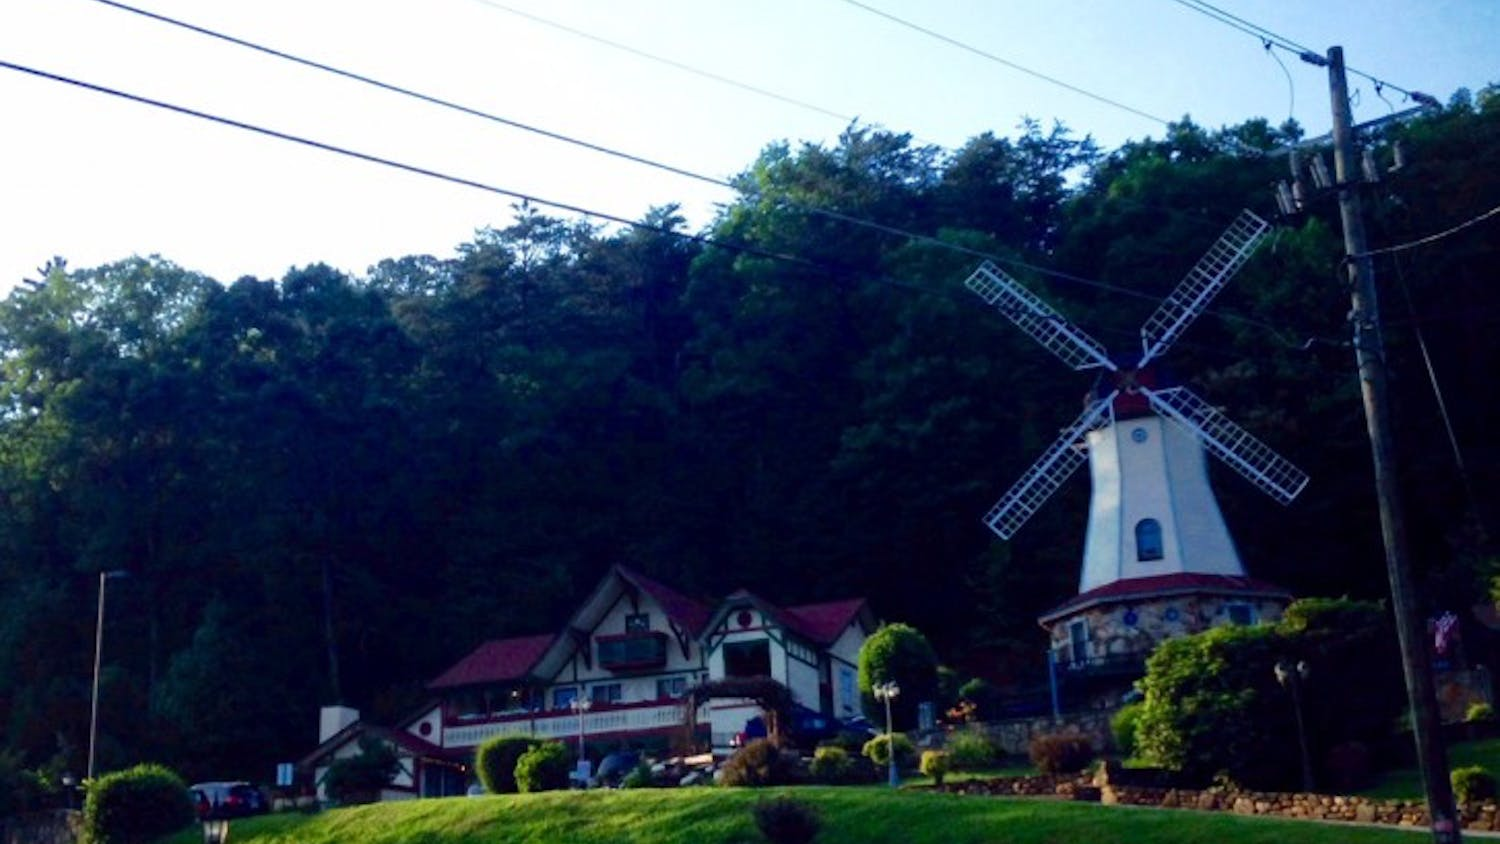 The Alpine village of Helen, Georgia, is home to plenty of cute shops, hiking and all-around fun.